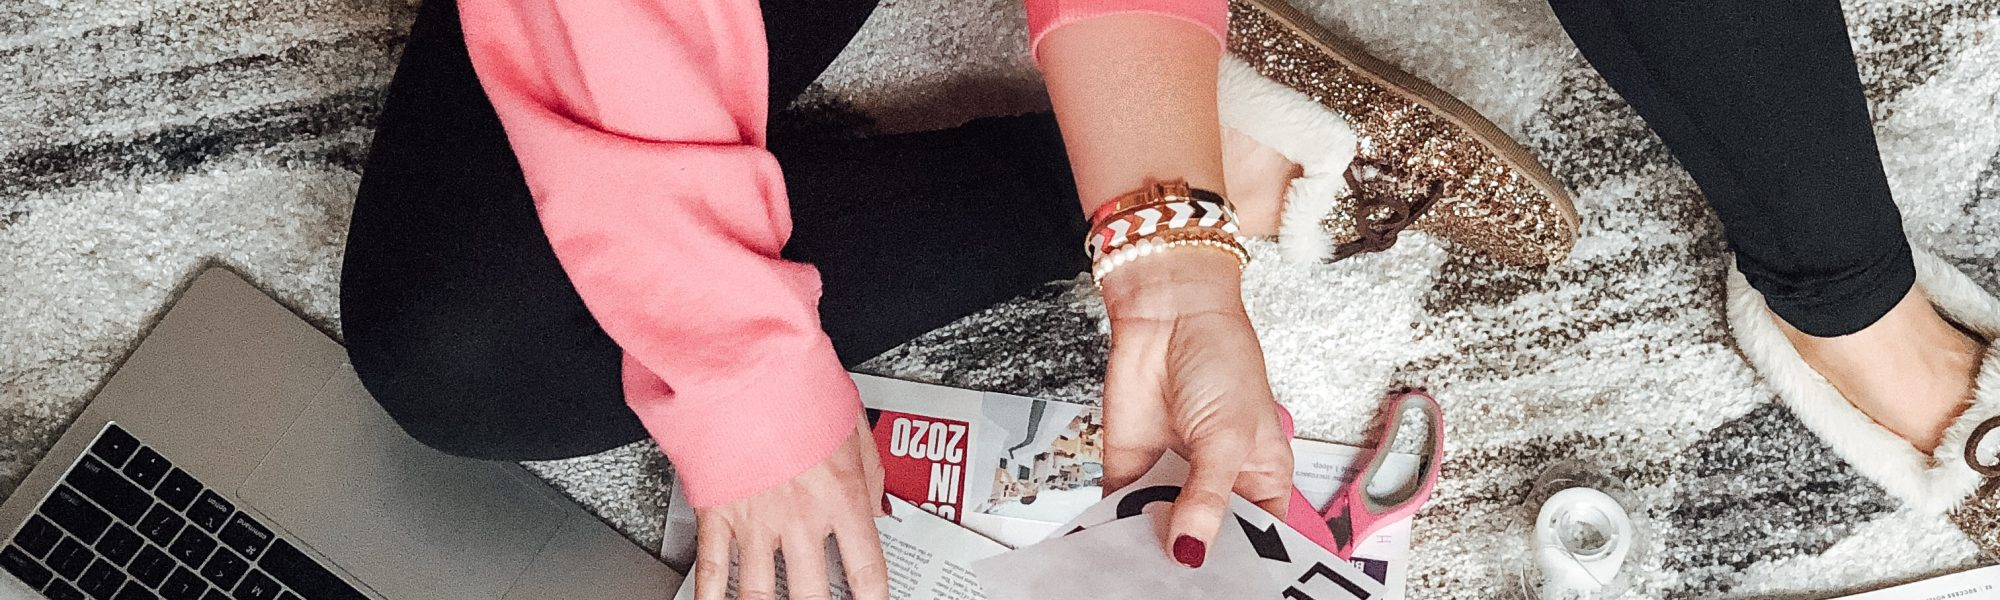 HOW TO MAKE A VISION BOARD AND ACHIEVE YOUR 2020 GOALS